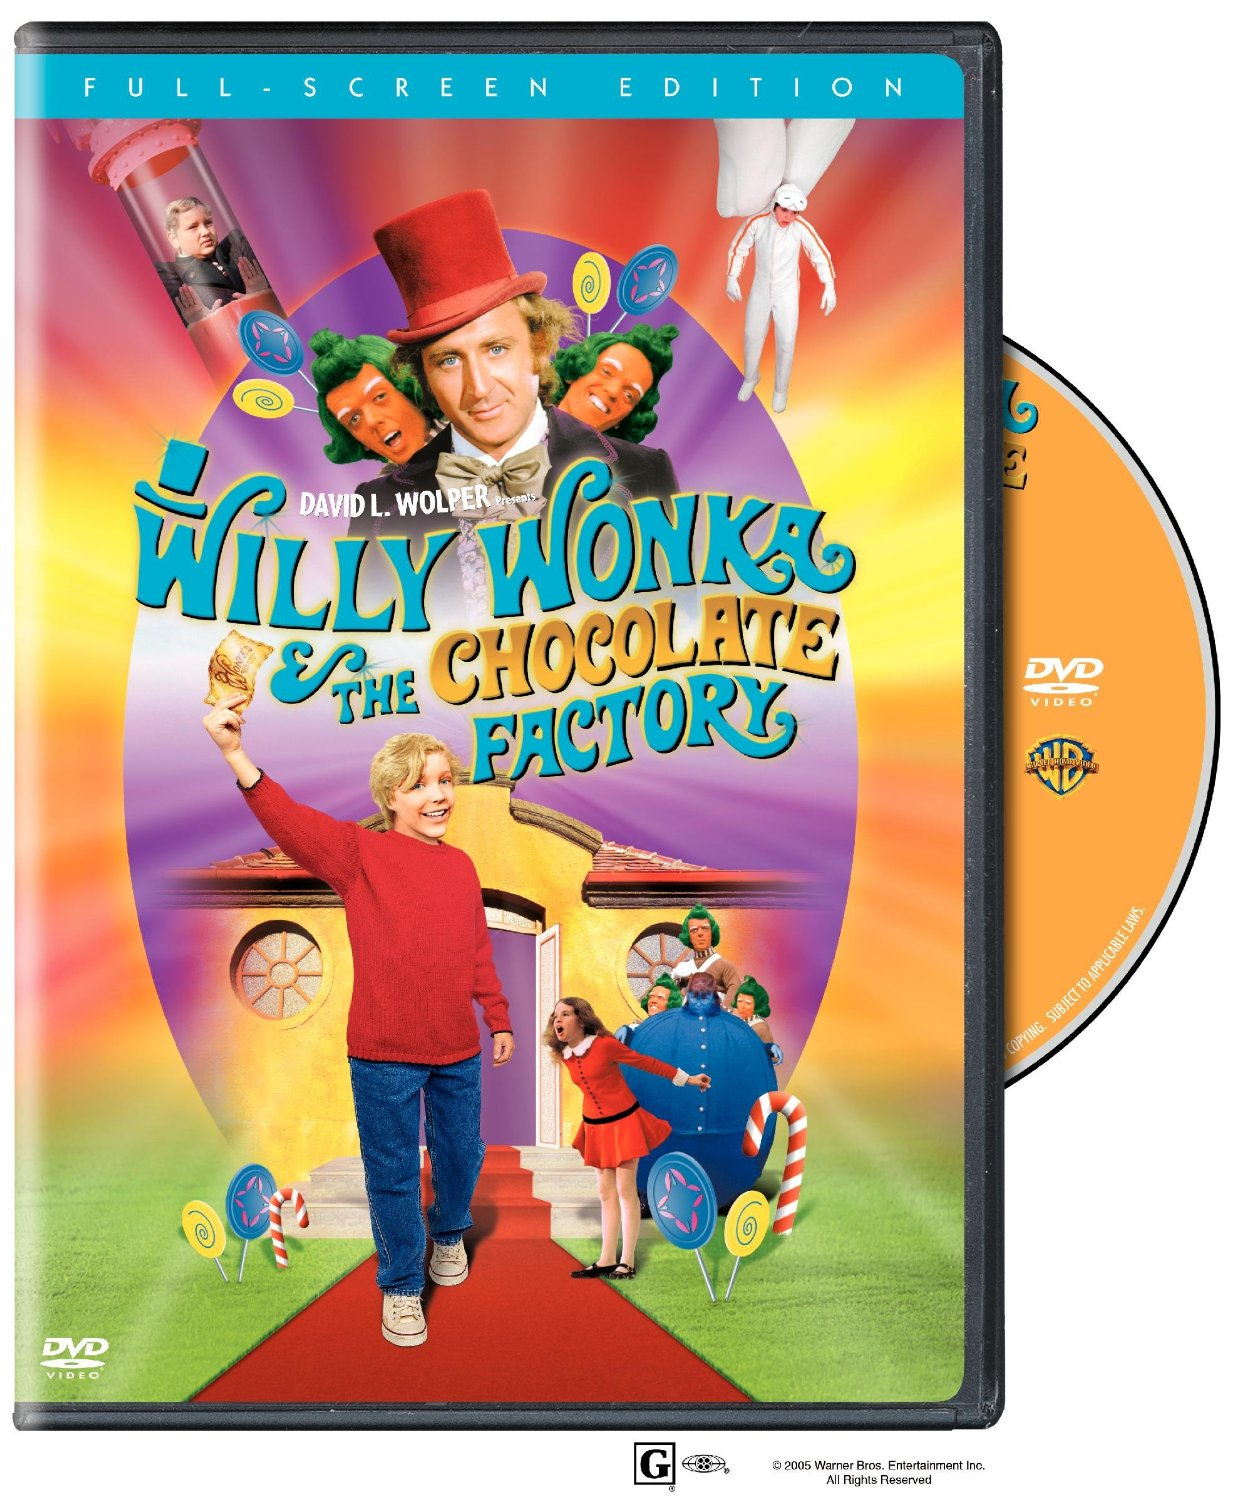 willy wonka video essay Willy wonka and the chocolate factory essay, buy custom willy wonka and the chocolate factory essay paper cheap, willy wonka and the chocolate factory essay paper.